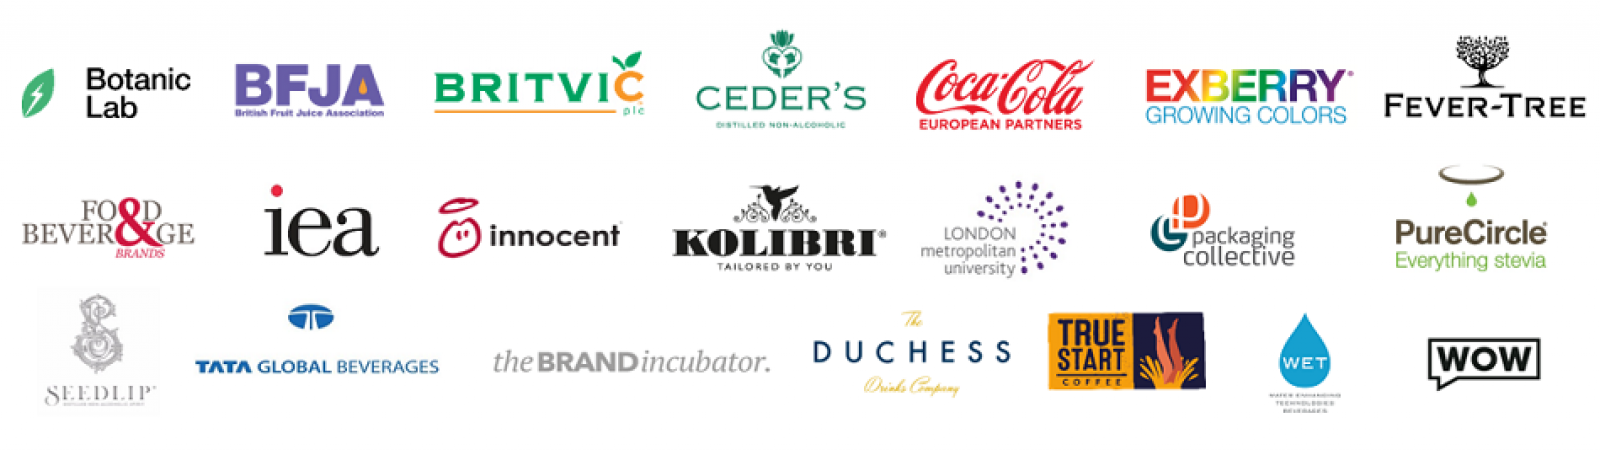 2019 UK Soft Drinks Conference Logo Wall